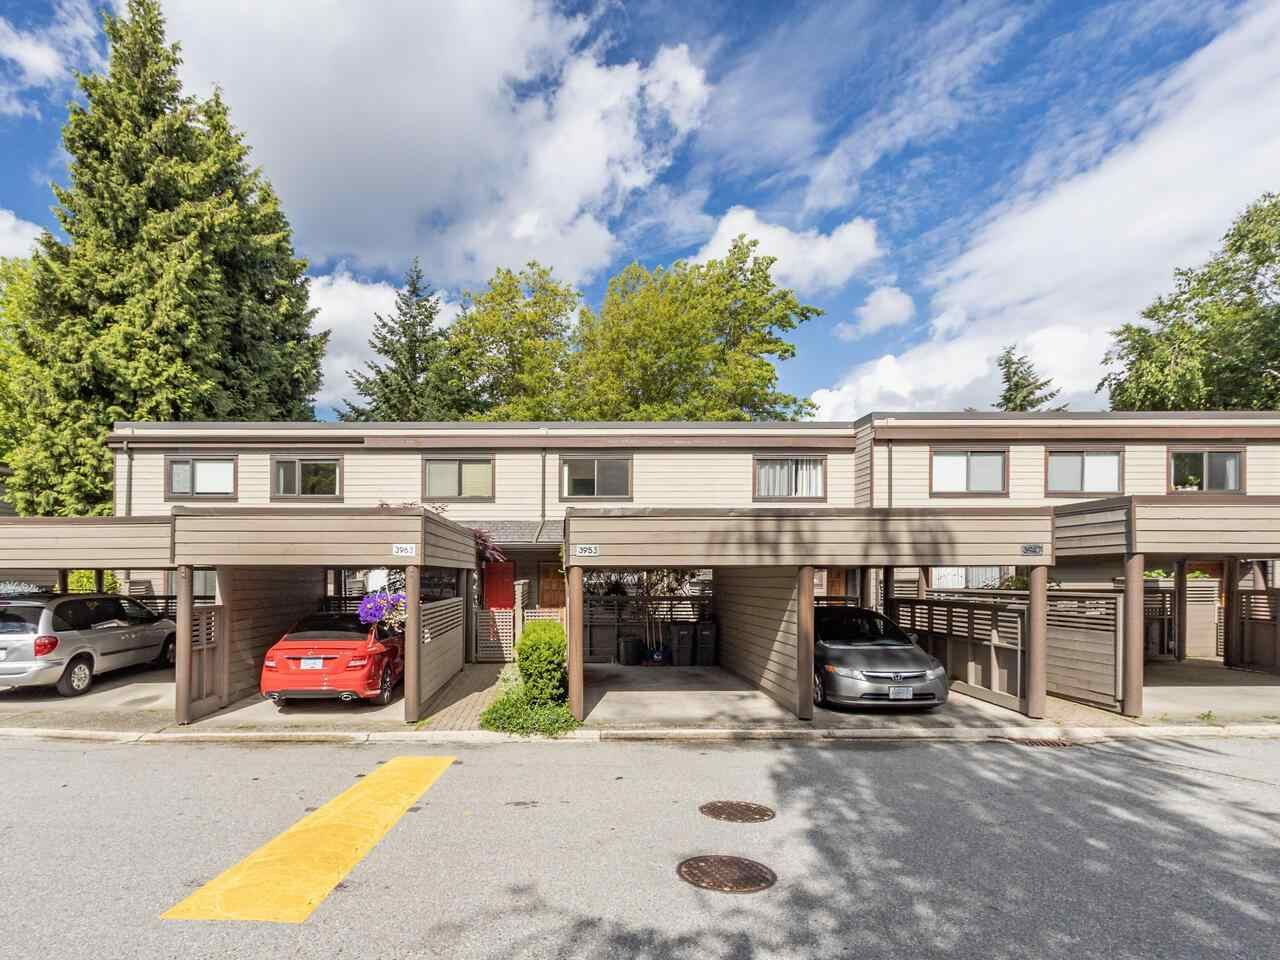 """Main Photo: 3953 PARKWAY Drive in Vancouver: Quilchena Townhouse for sale in """"ARBUTUS VILLAGE"""" (Vancouver West)  : MLS®# R2591201"""